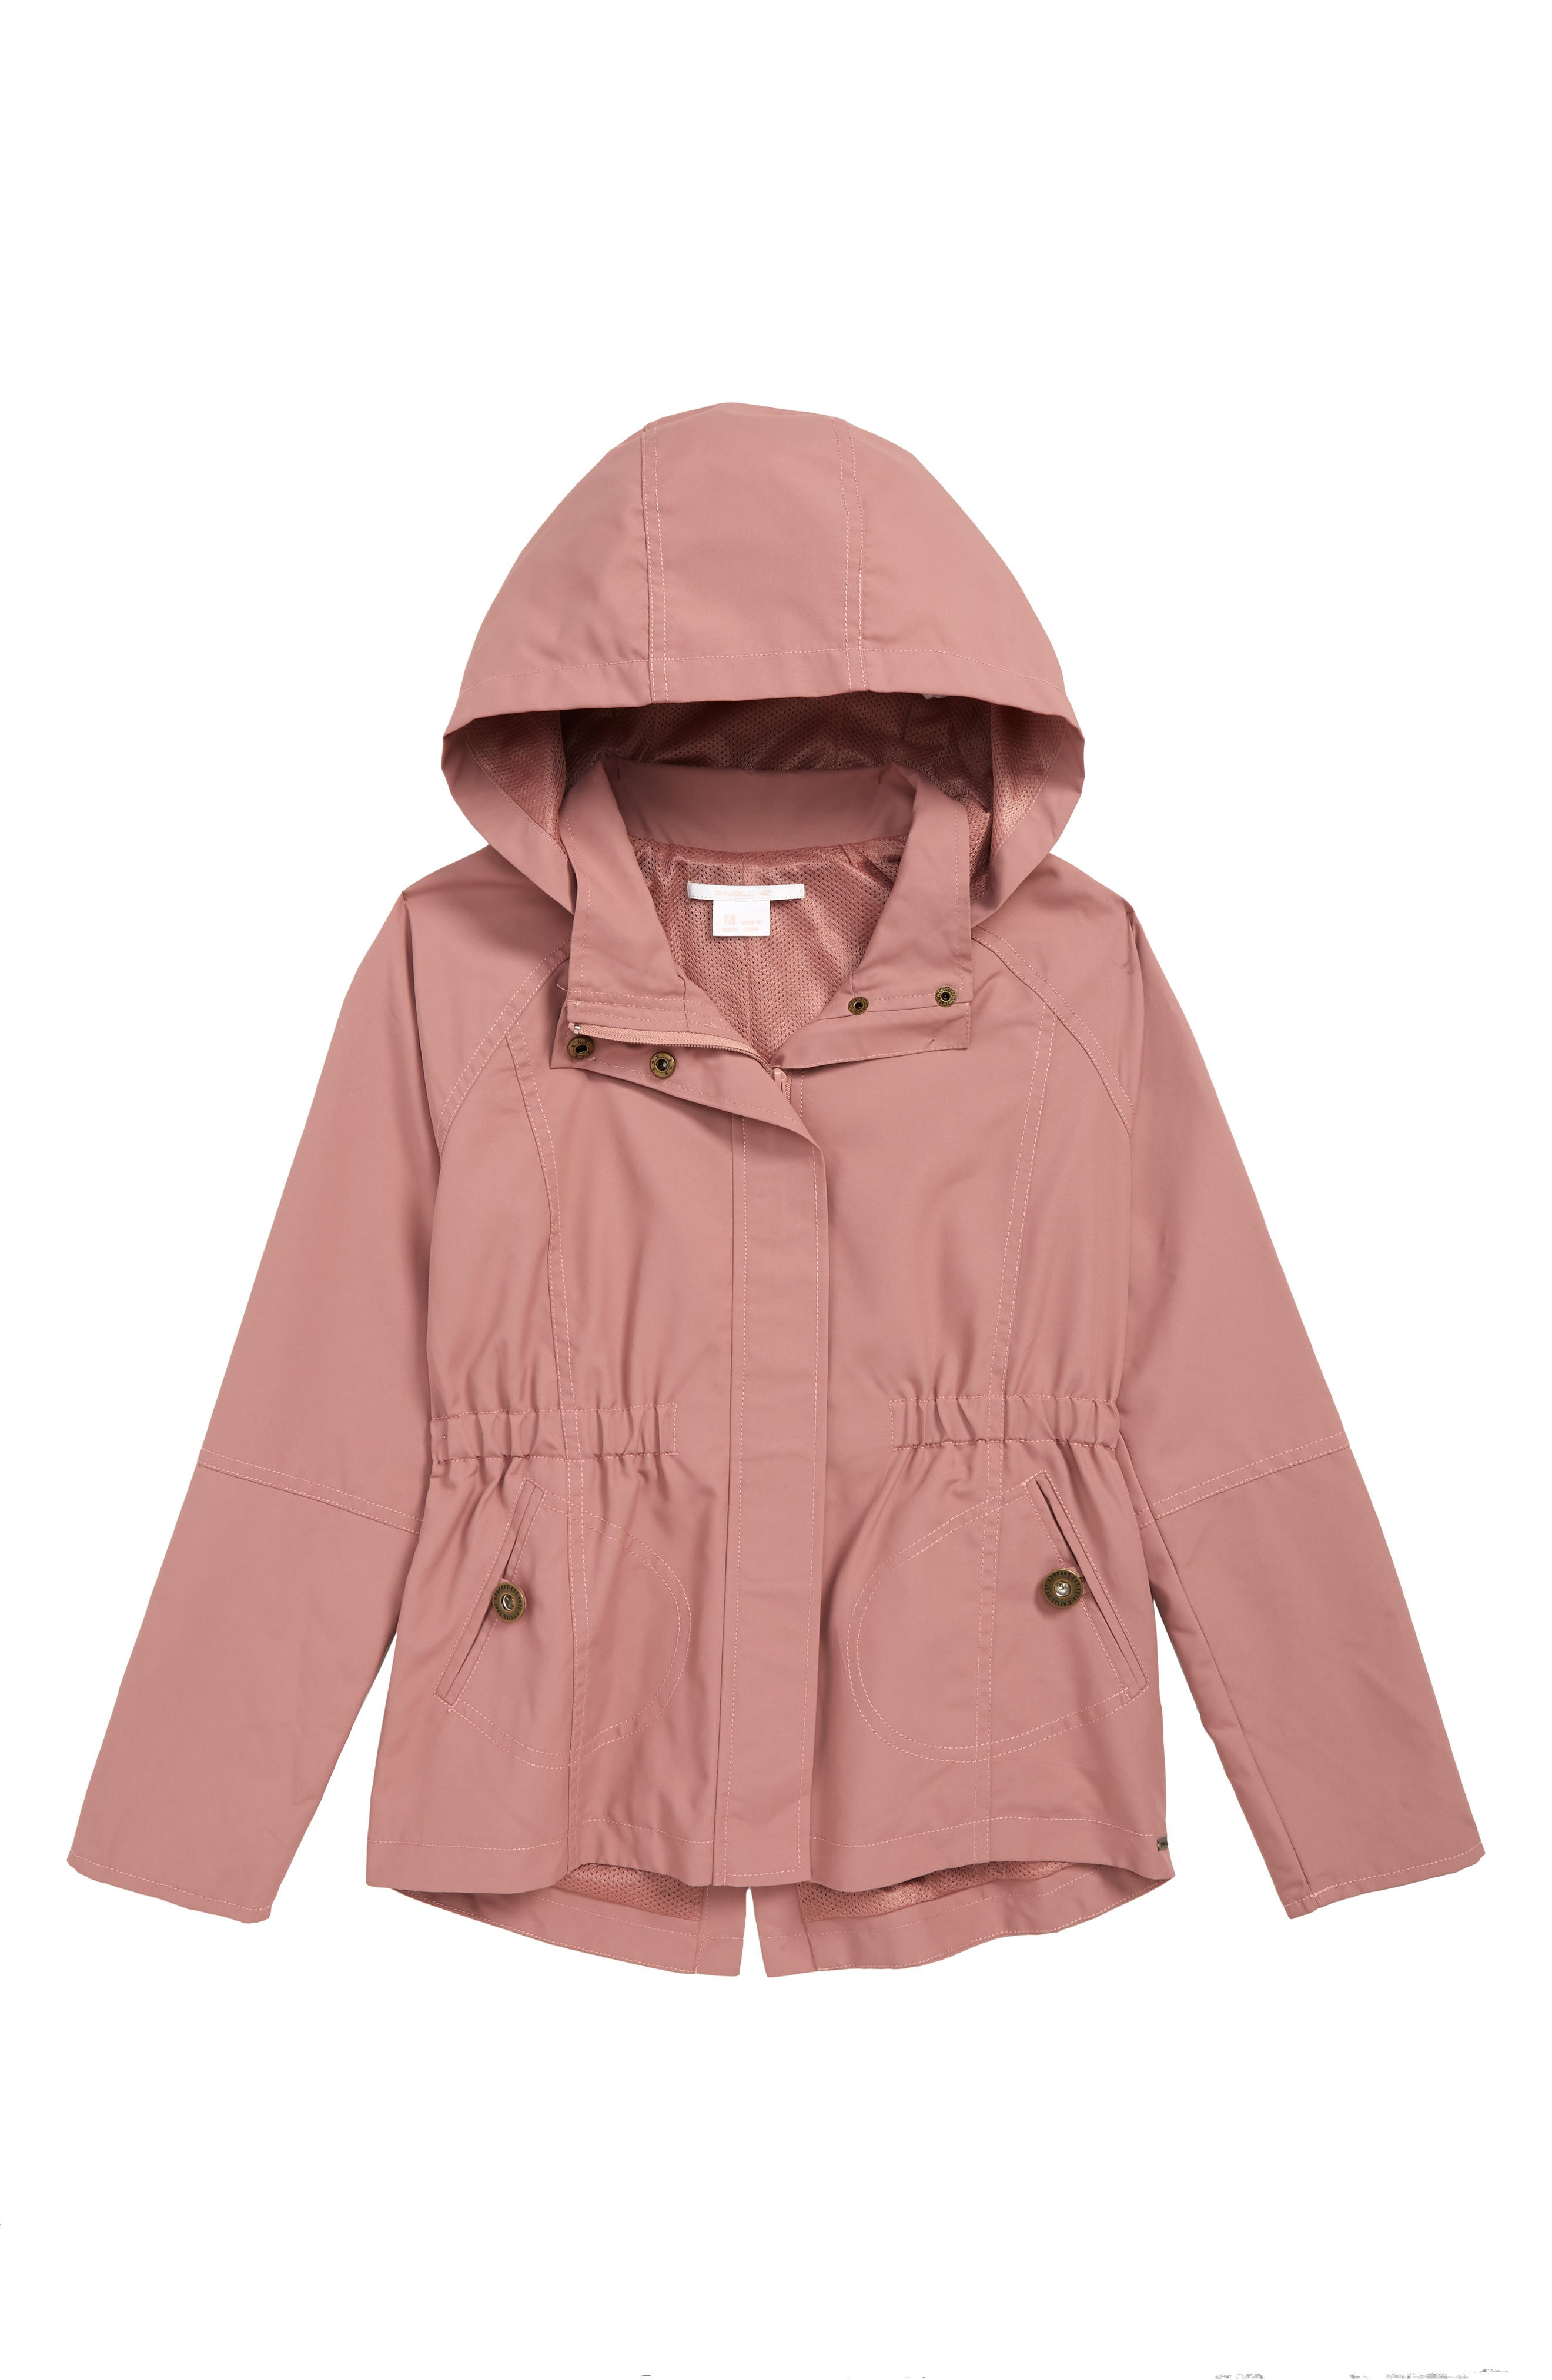 O'NEILL, Windy Water Resistant Hooded Jacket, Main thumbnail 1, color, DUSTY MAUVE